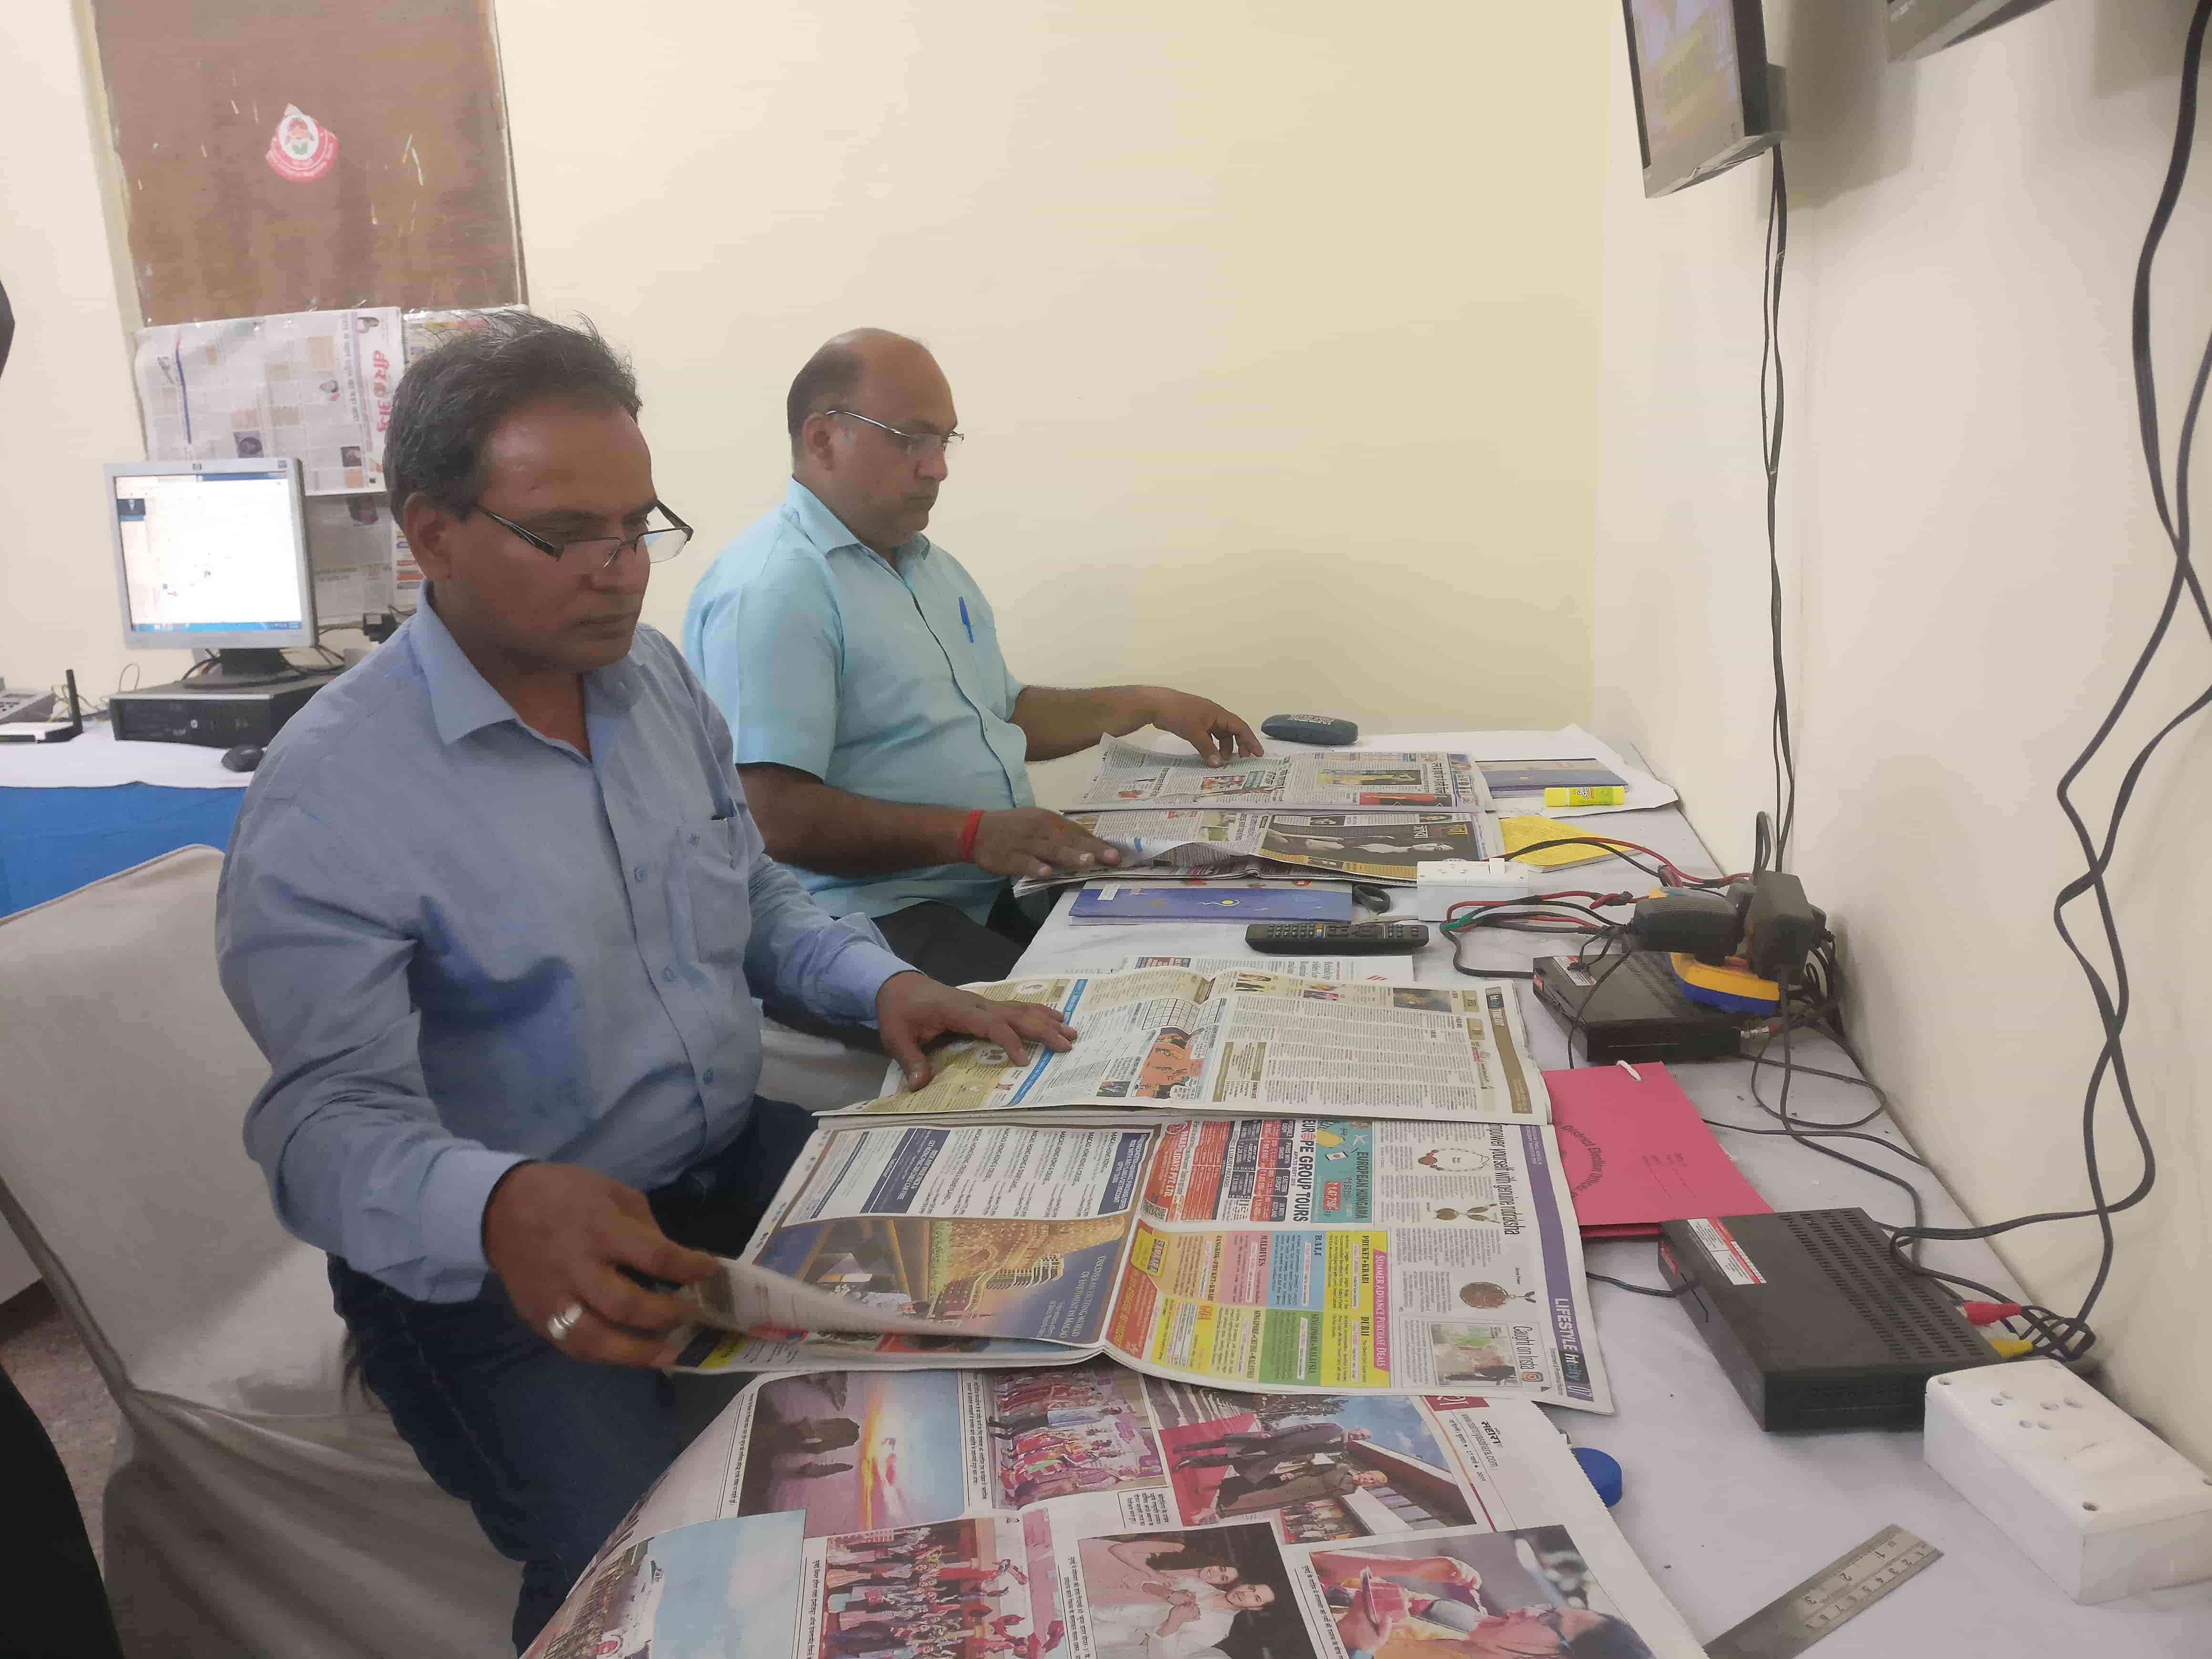 Members of South Delhi district's election control room check 28 newspapers each day and send reports to the returning officer who is part of the Media Certification and Monitoring Committee. (Photo credit:  Shreya Roy Chowdhury).